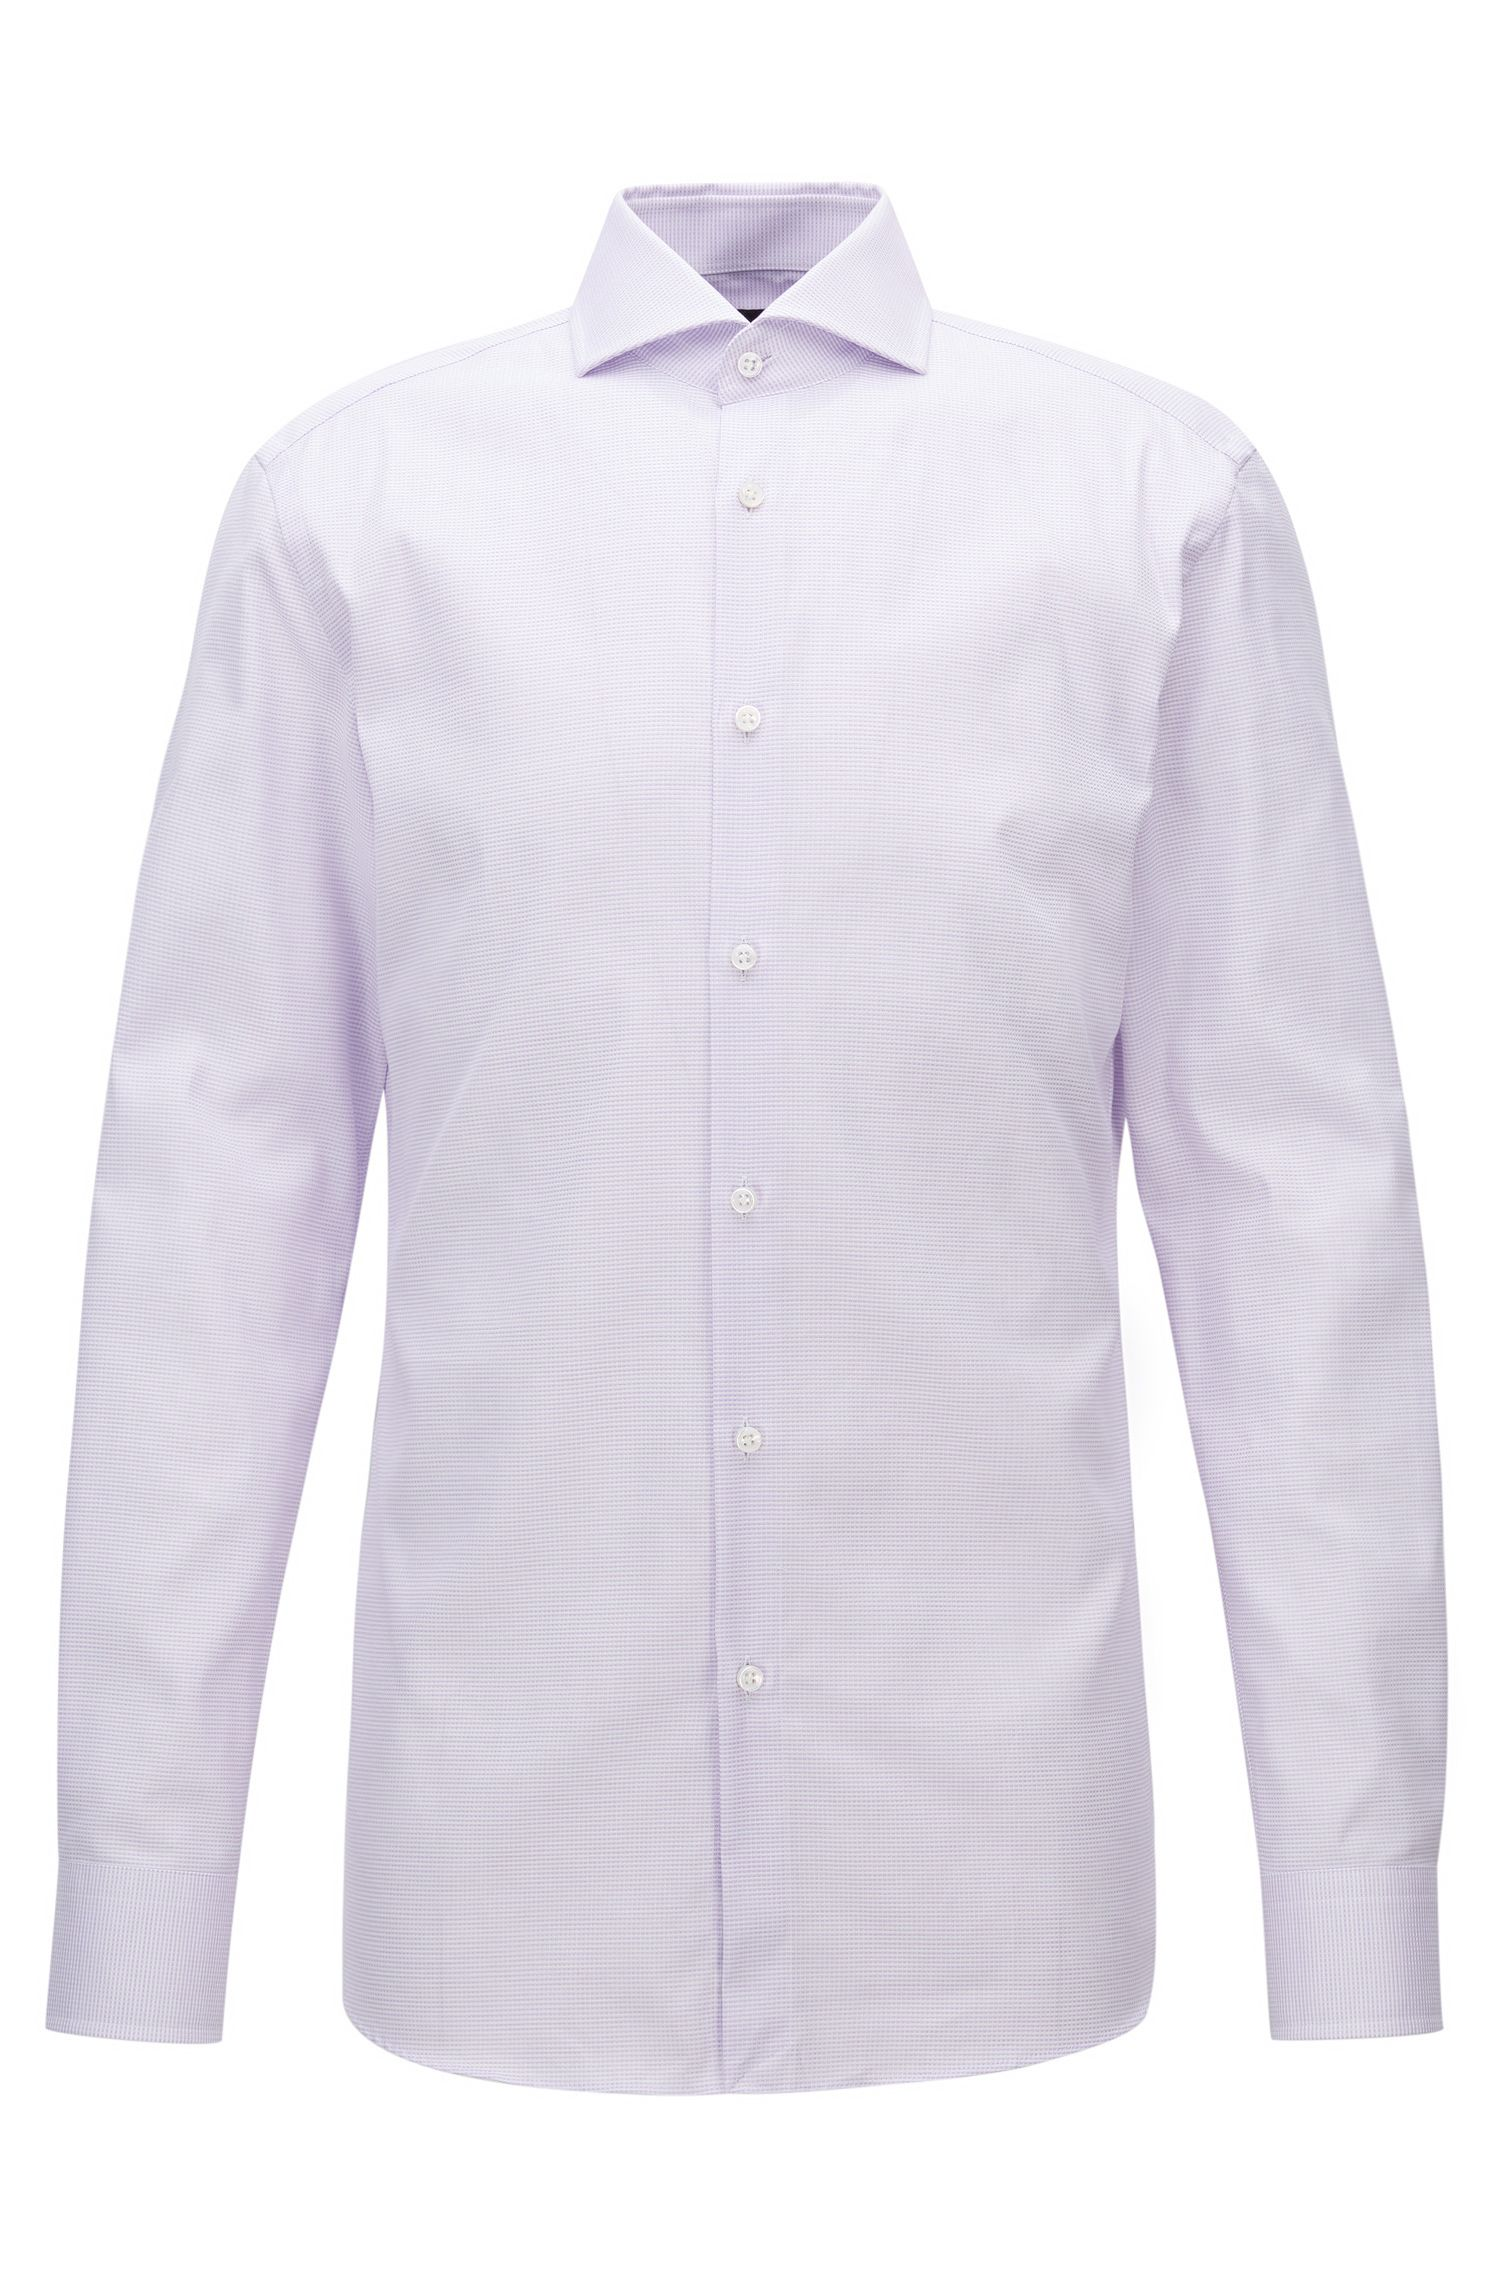 Mini-Check Cotton Dress Shirt, Slim Fit | T-Christo